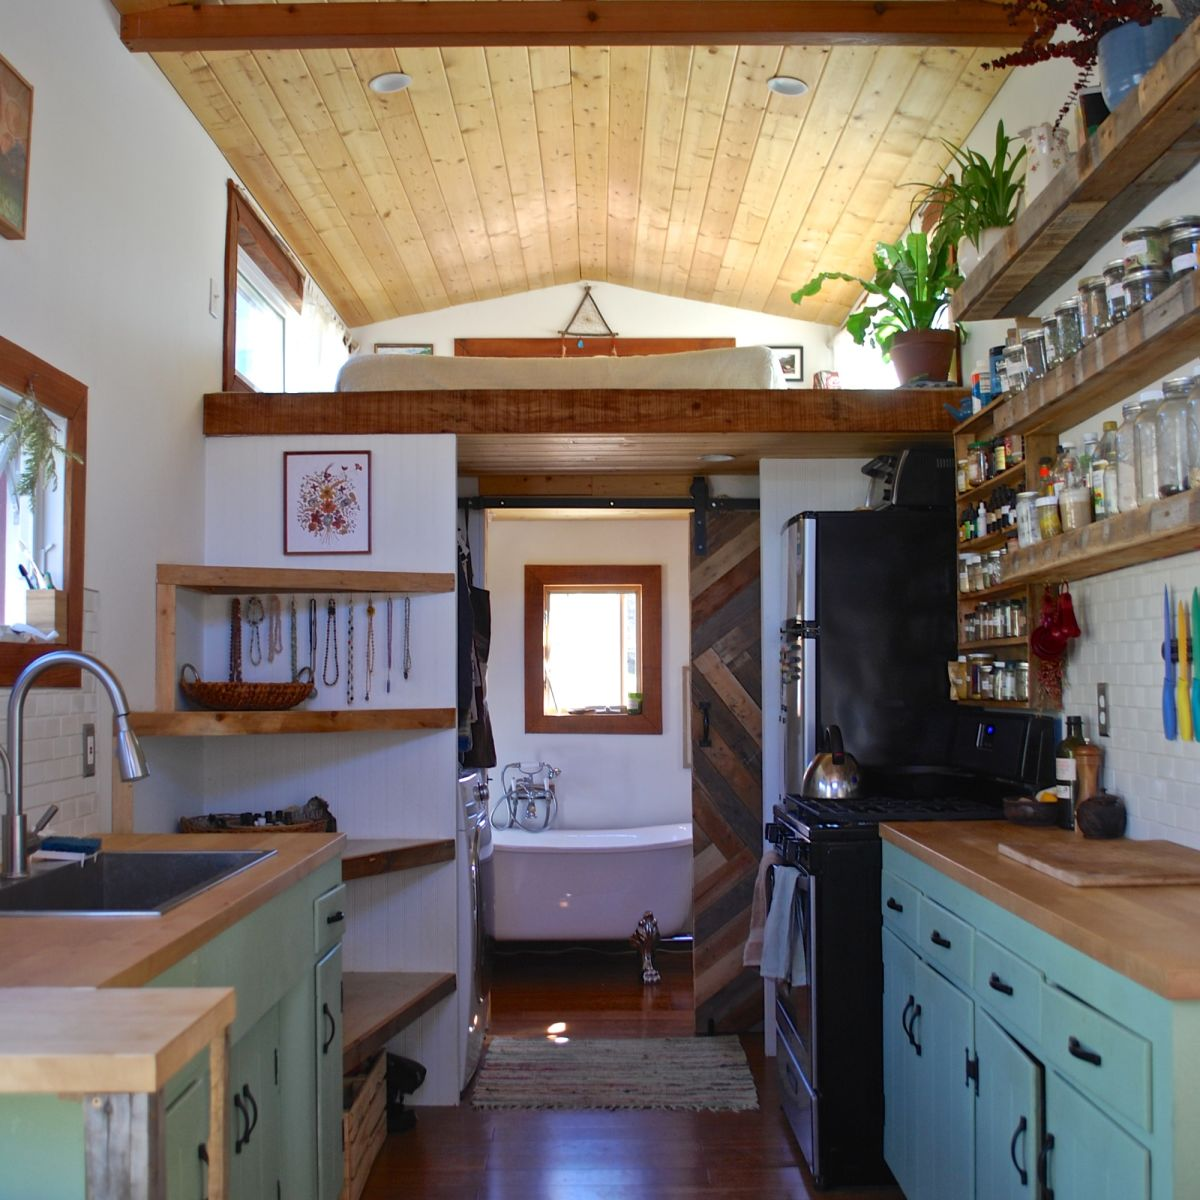 Off-grid Heavenly Tiny House - Now Discounted! - Tiny House for Sale in San  Marcos, California - Tiny House Listings